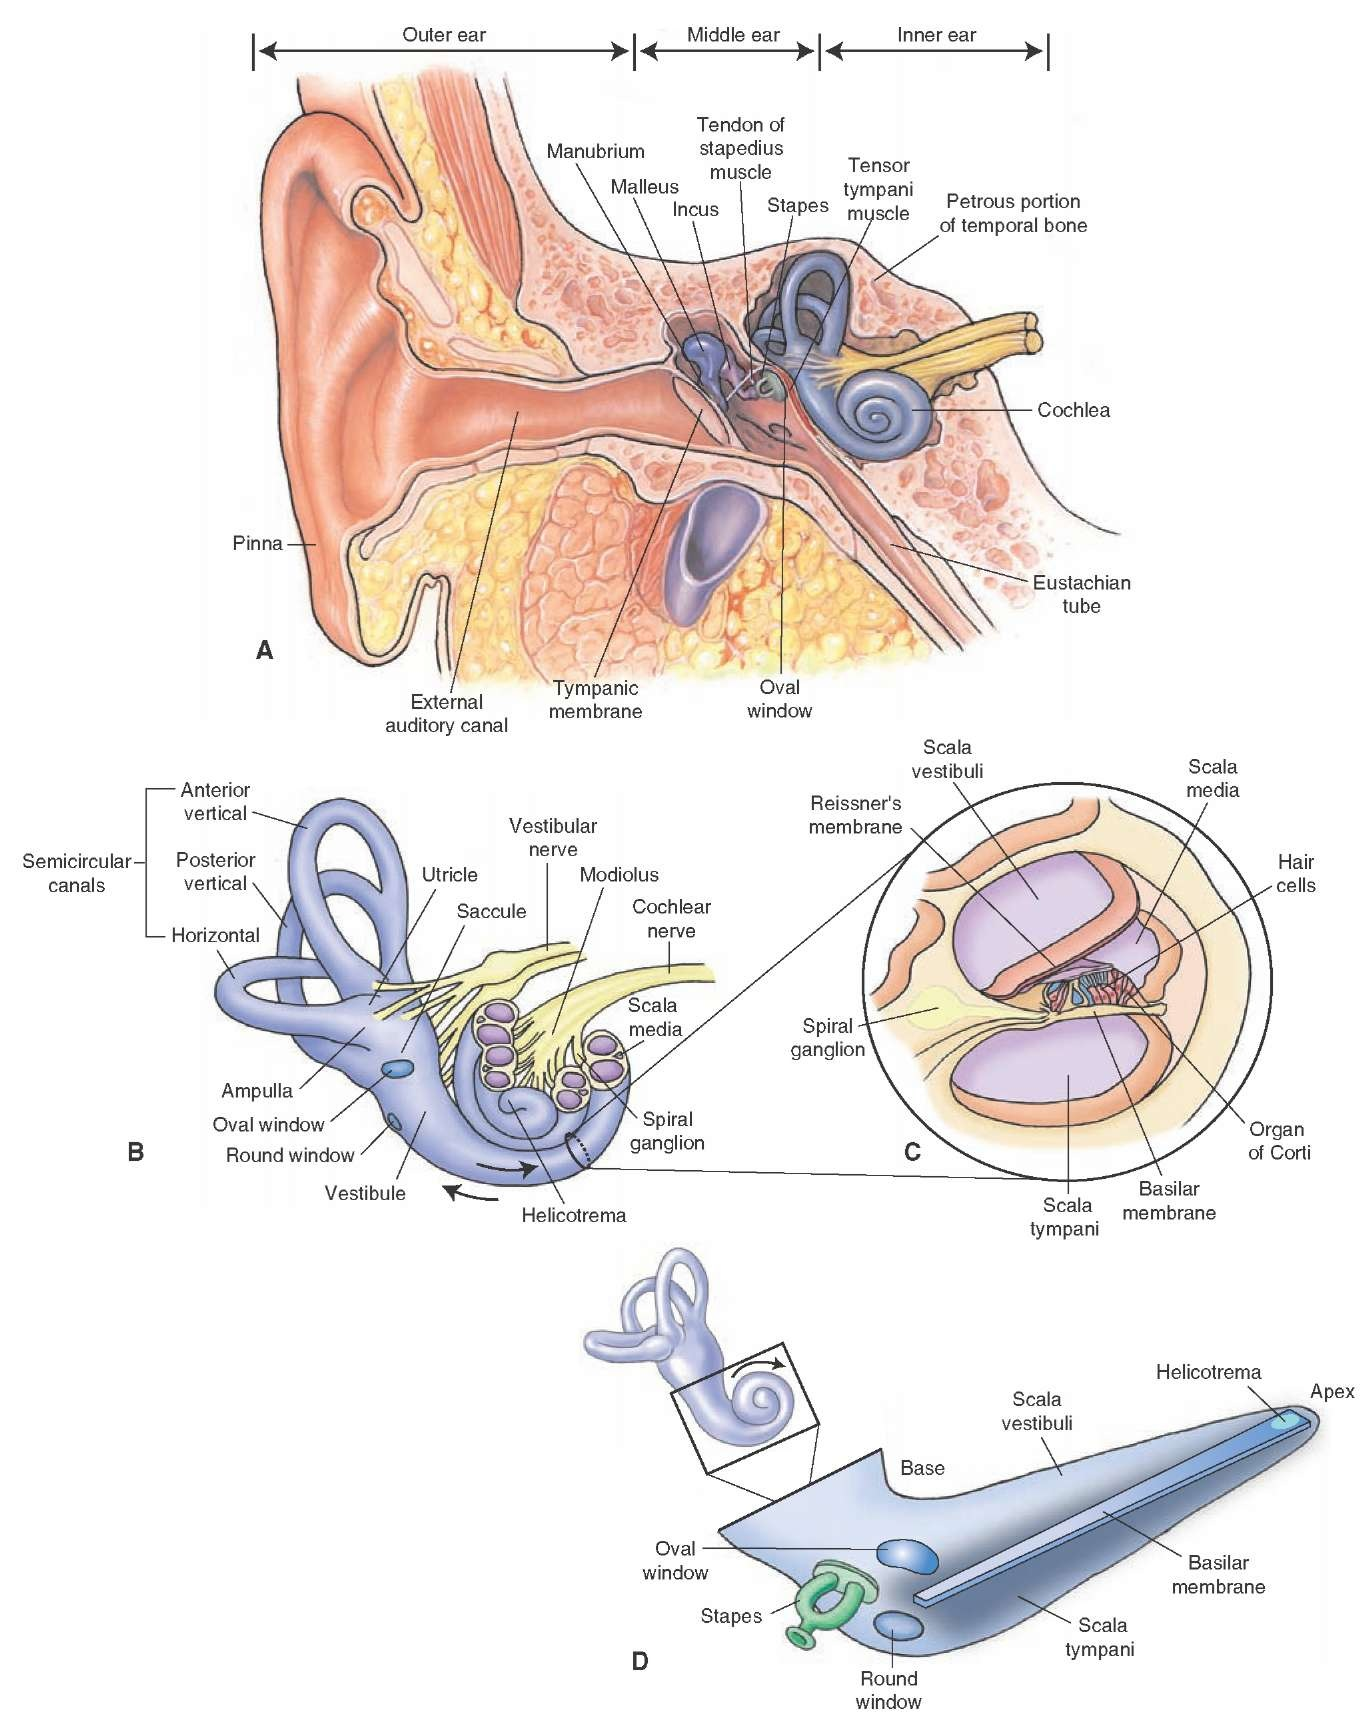 Components of the ear. (A) Note the location of the external, middle, and inner ear. The middle ear contains three small bones (the malleus, the incus, and the stapes). (B) The inner ear consists of a bony labyrinth that contains the vestibule, three semicircular (anterior, posterior, and lateral) canals, and the cochlea. (C) A cross section of cochlea reveals that the scala media is bounded by the vestibular (Reissner's) and basilar membranes, and the organ of Corti lies within the scala media (cochlear duct). (D) A diagram of an uncoiled cochlea.